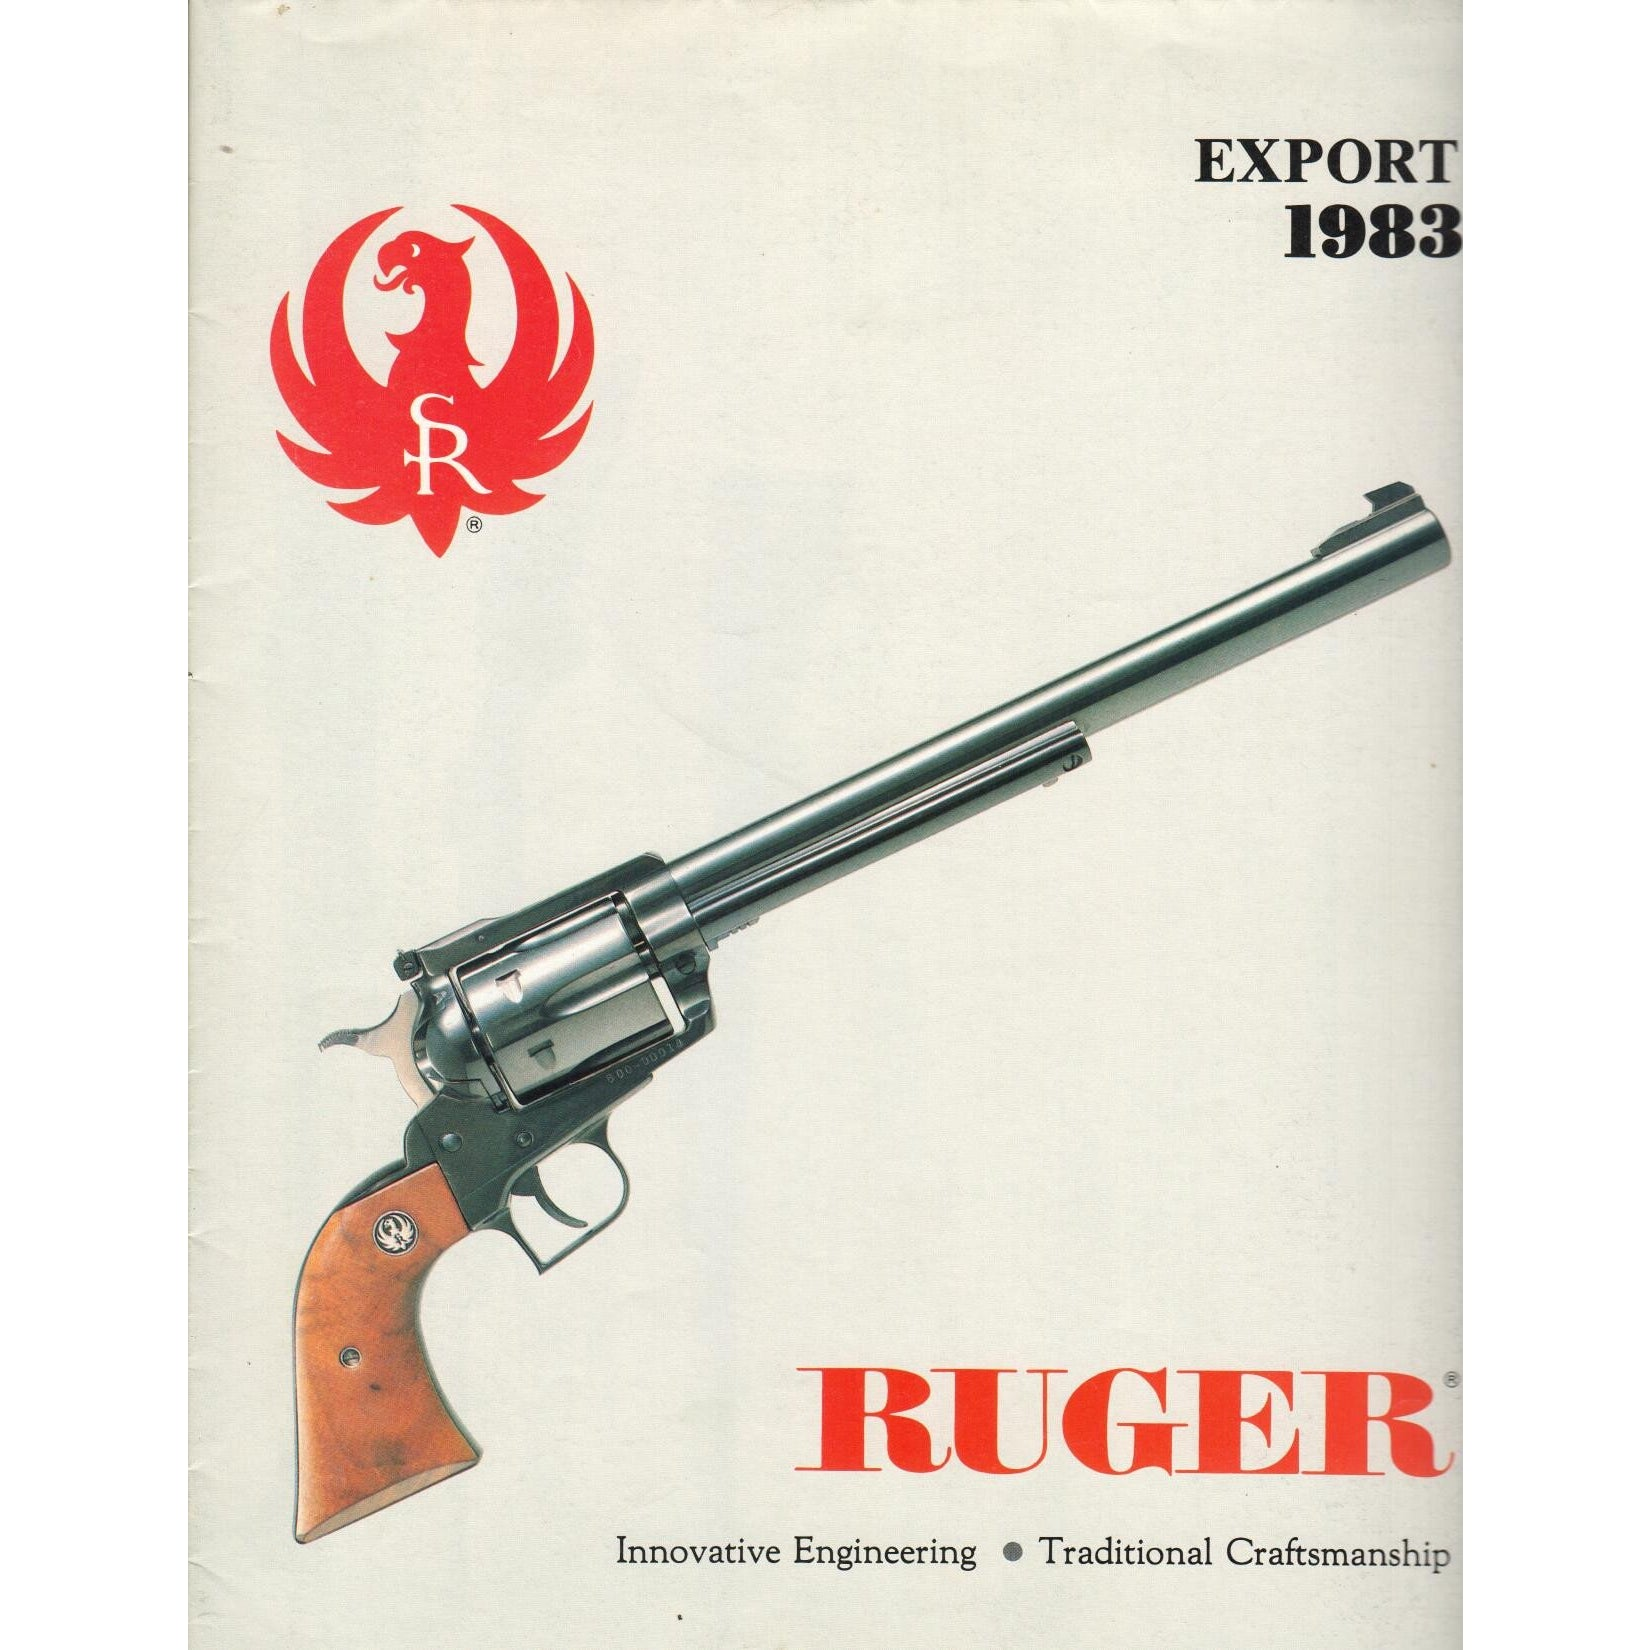 Ruger Export 1983,Catalogues & Brochures- Canada Brass